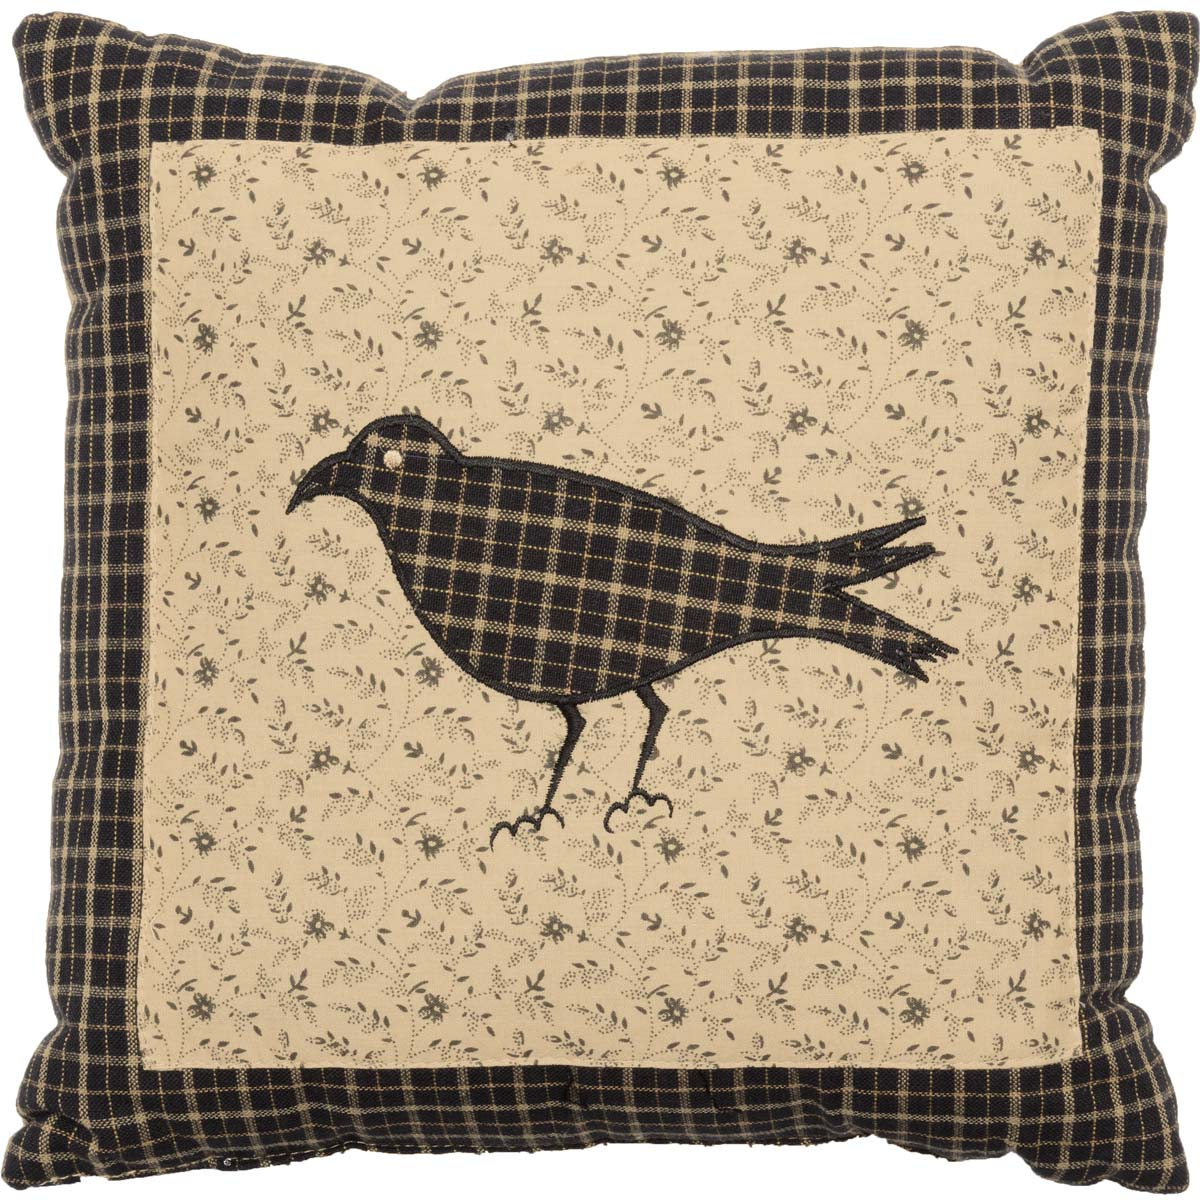 Country Black Primitive Bedding Prim Grove Crow Cotton Appliqued Nature Print Square 10x10 Pillow